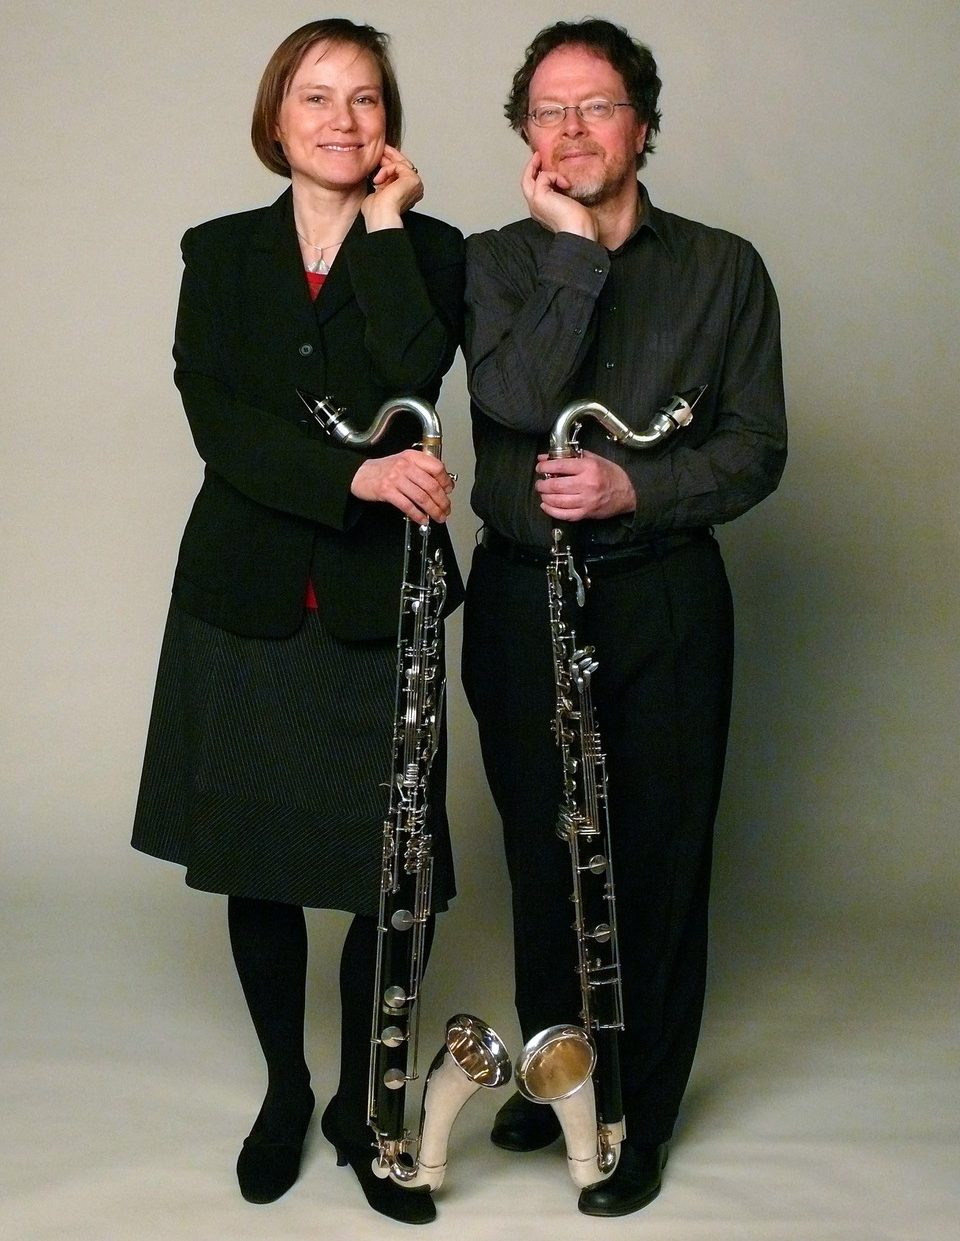 Die Klarinettisten Beate Zelinsky und David Smeyers - das Klarinettenduo